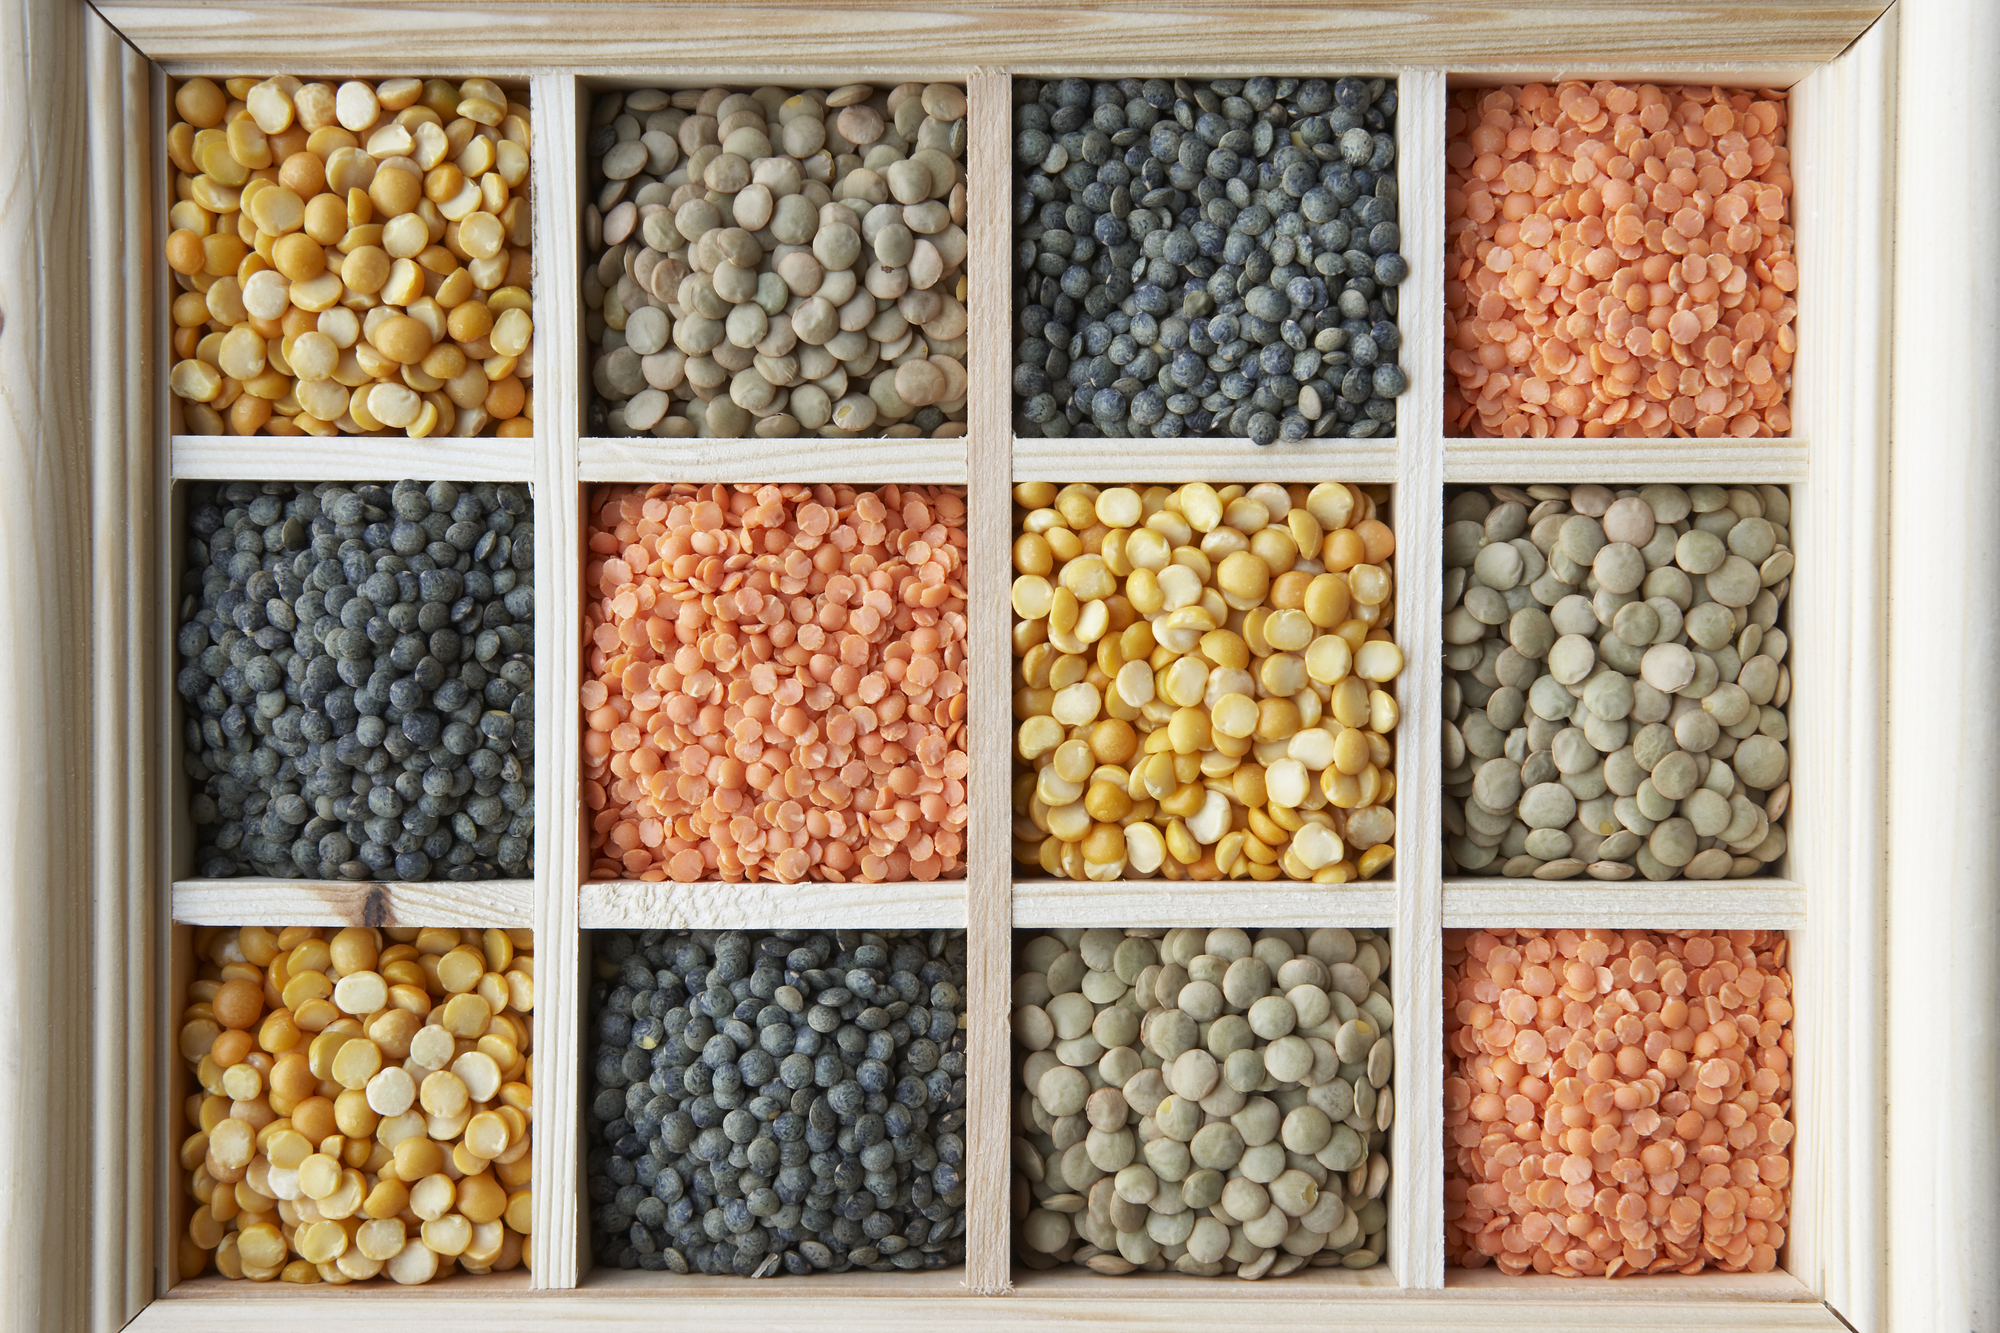 Different types of lentils in a display box